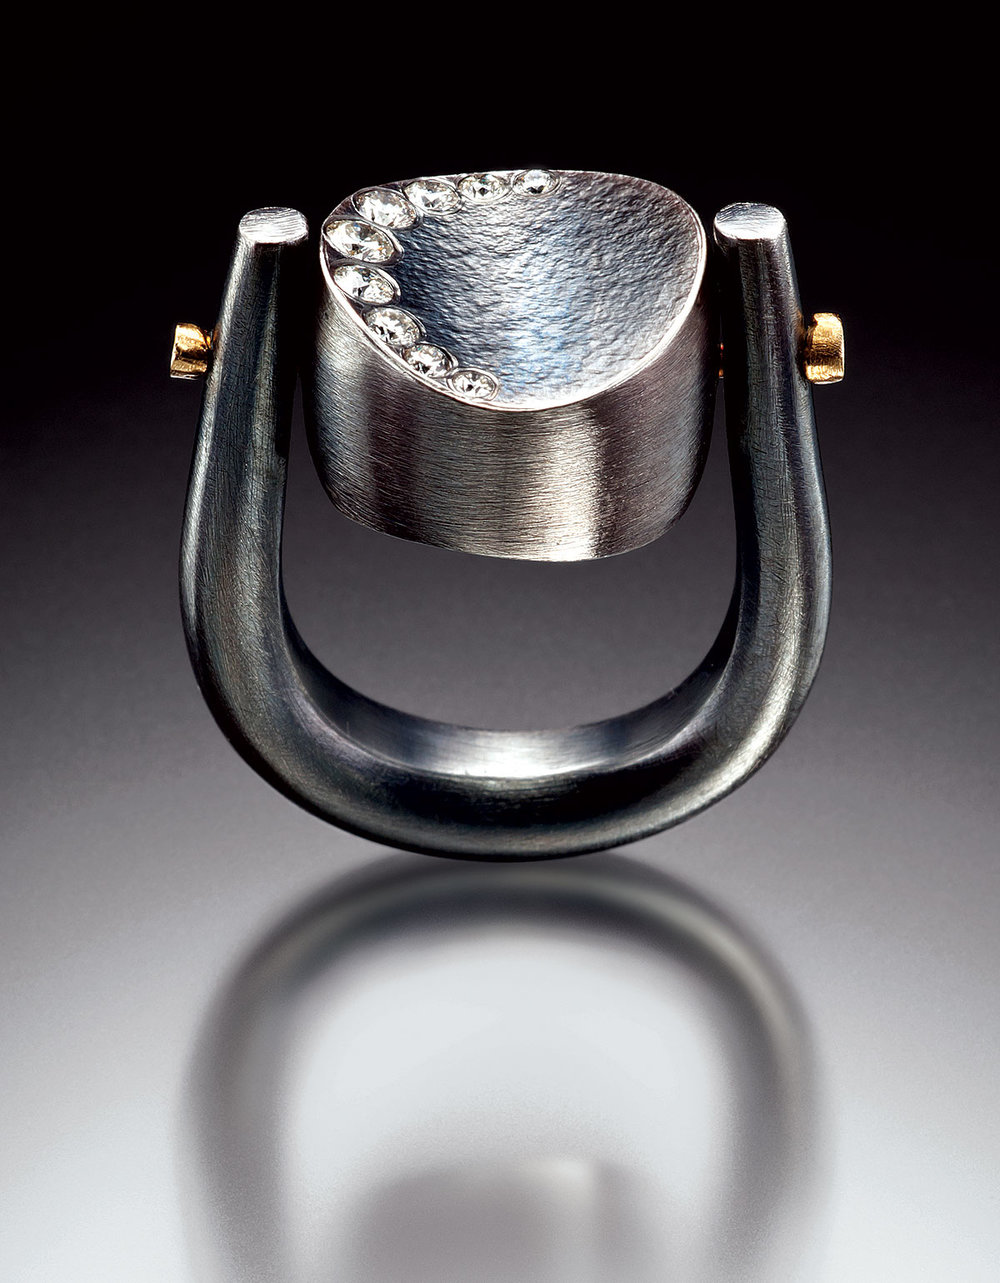 "FLIP RING of oxidized sterling, eighteen karat yellow gold, white diamonds, 3.2 x 1.9 x 1.6 centimeters, 2011. ""The band on this piece was hand-forged, and the center bead was hollow form construction with stars flush set on one side and a diamond crescent moon set on the other side."""